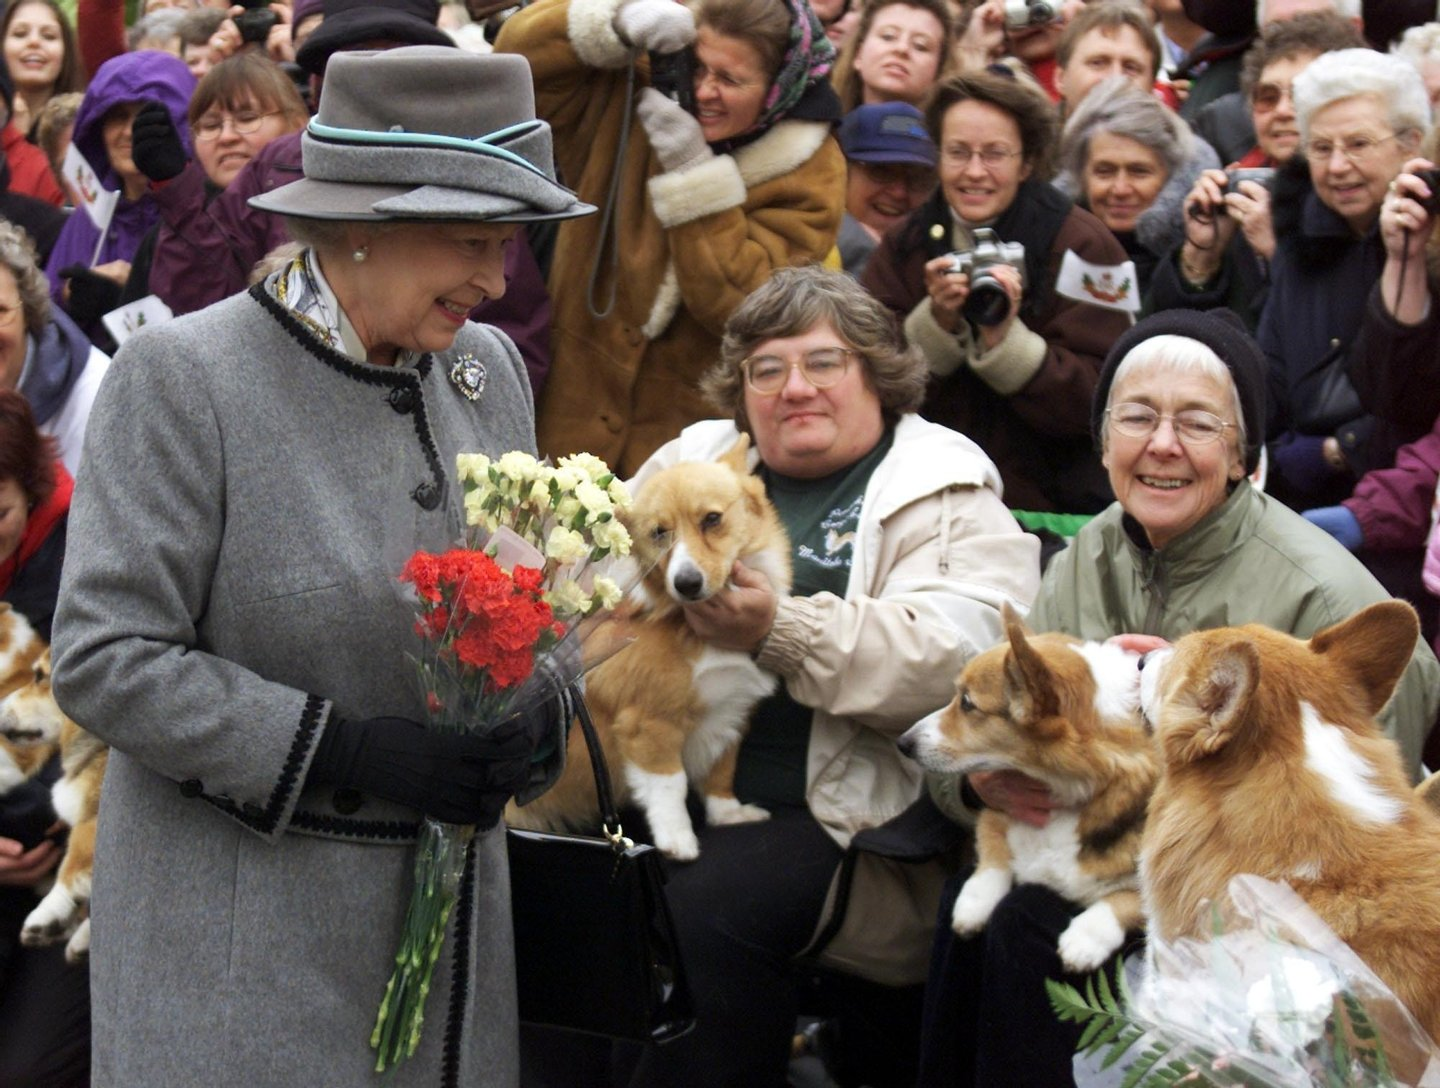 WINNIPEG, CANADA: Queen Elizabeth II talks with members of the Manitoba Corgi Association during a visit to Winnipeg 08 October 2002. The queen, making her 20th trip to Canada, is the last stop on the year-long jubilee tour celebrating her 50-year reign. AFP PHOTO/POOL/Adrian WYLD (Photo credit should read ADRIAN WYLD/AFP/Getty Images)